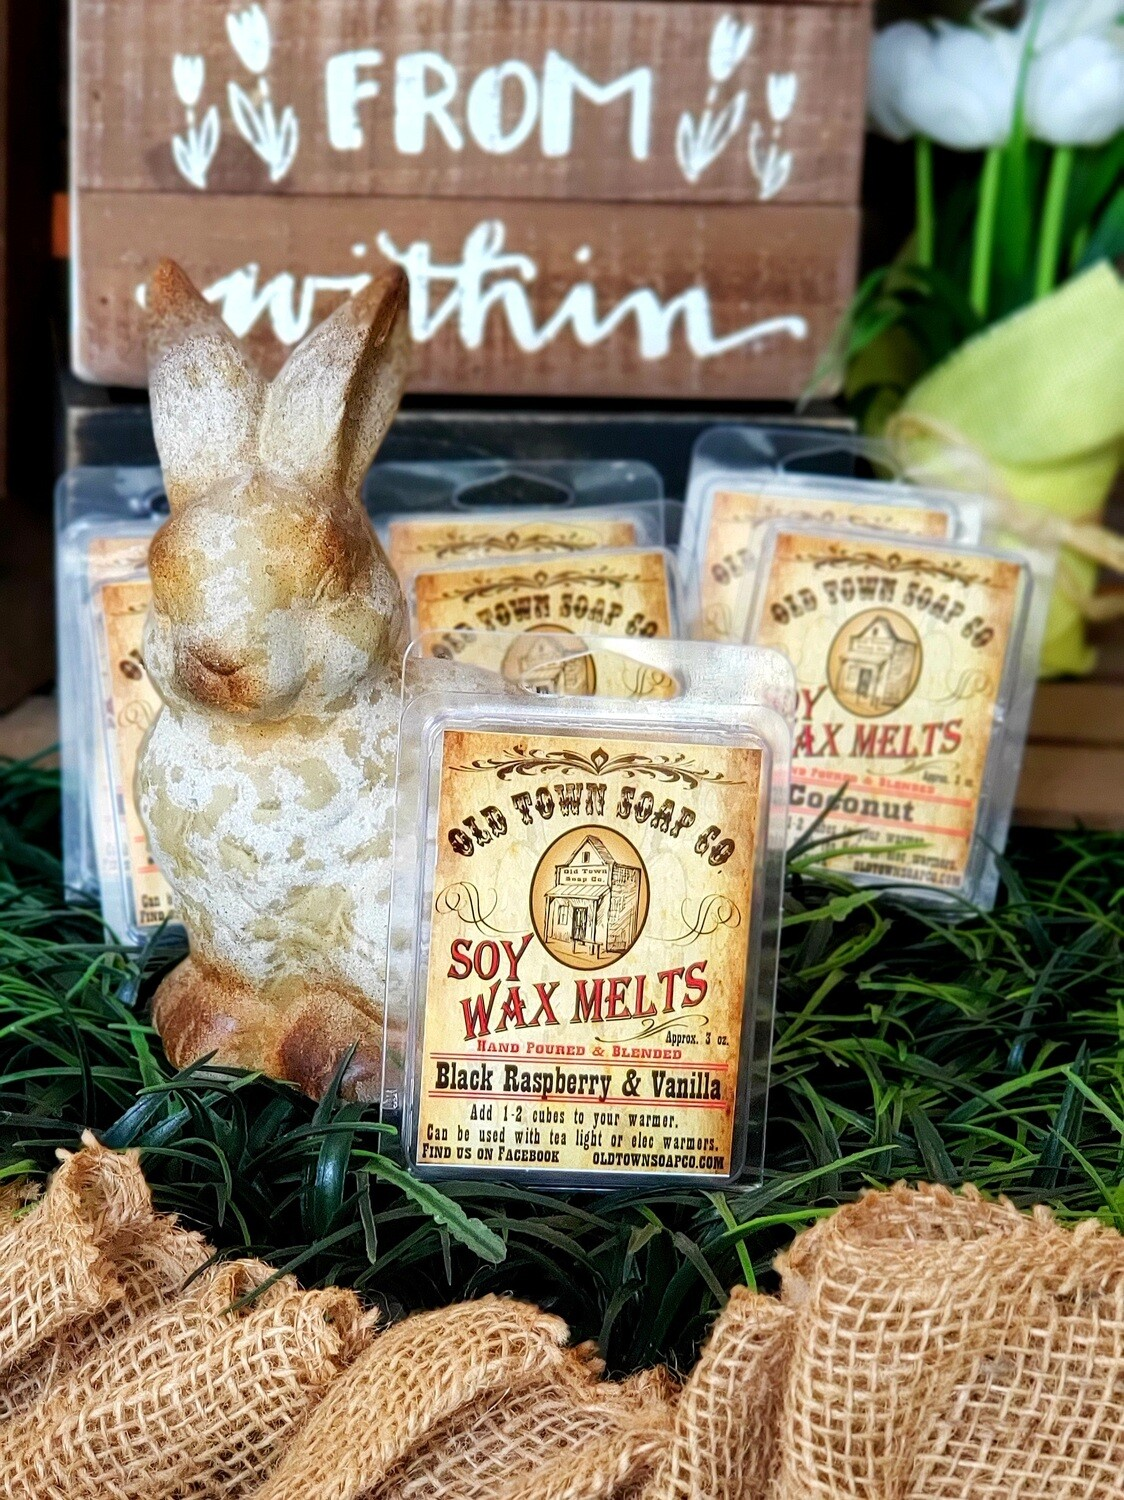 The Cowboy -Wax Melts